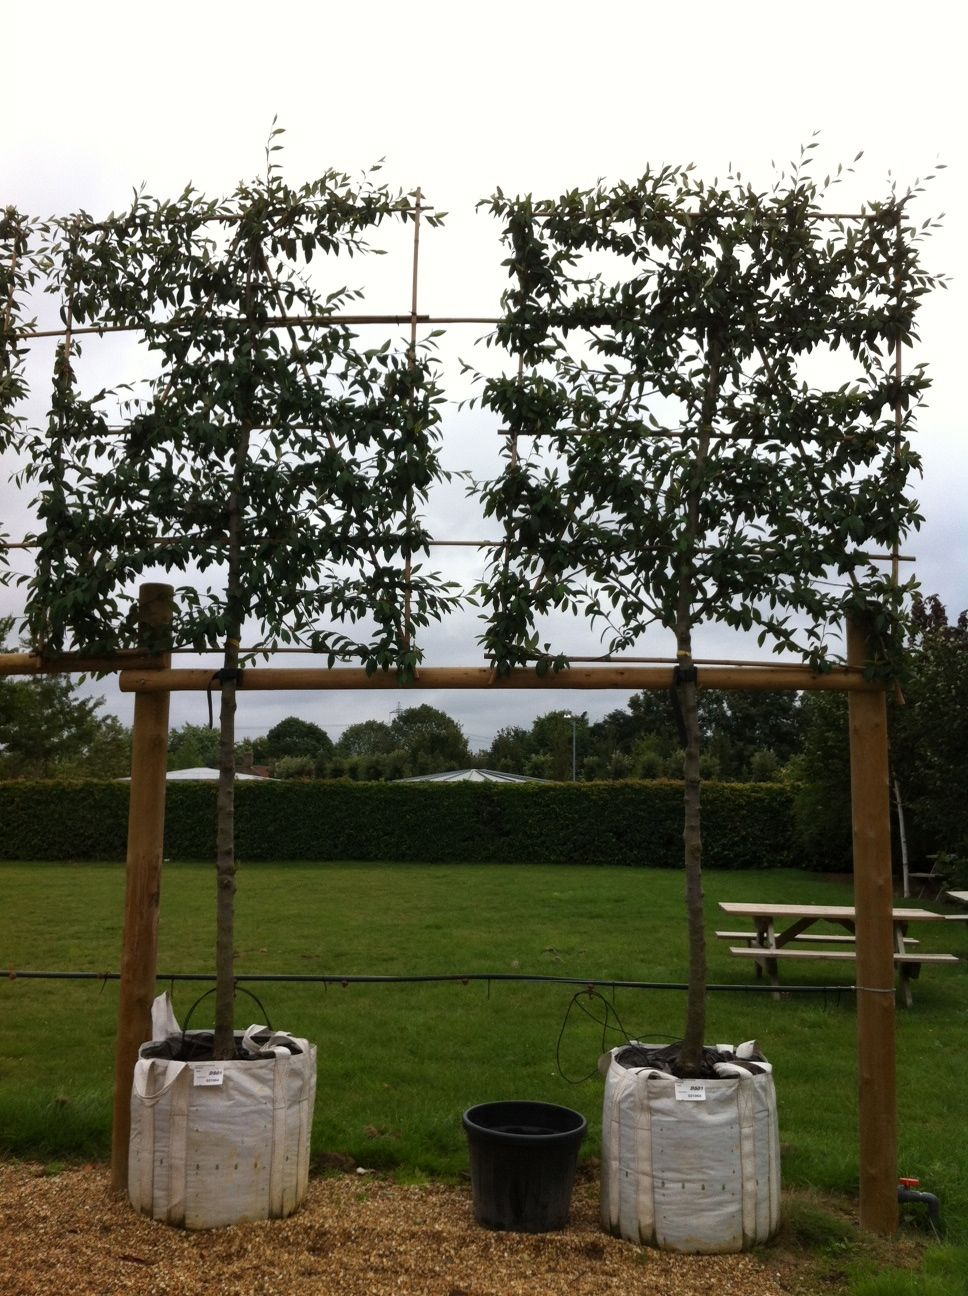 cotoneaster cornubia pleached 18m clear stem on 12m square frame 20 varieties